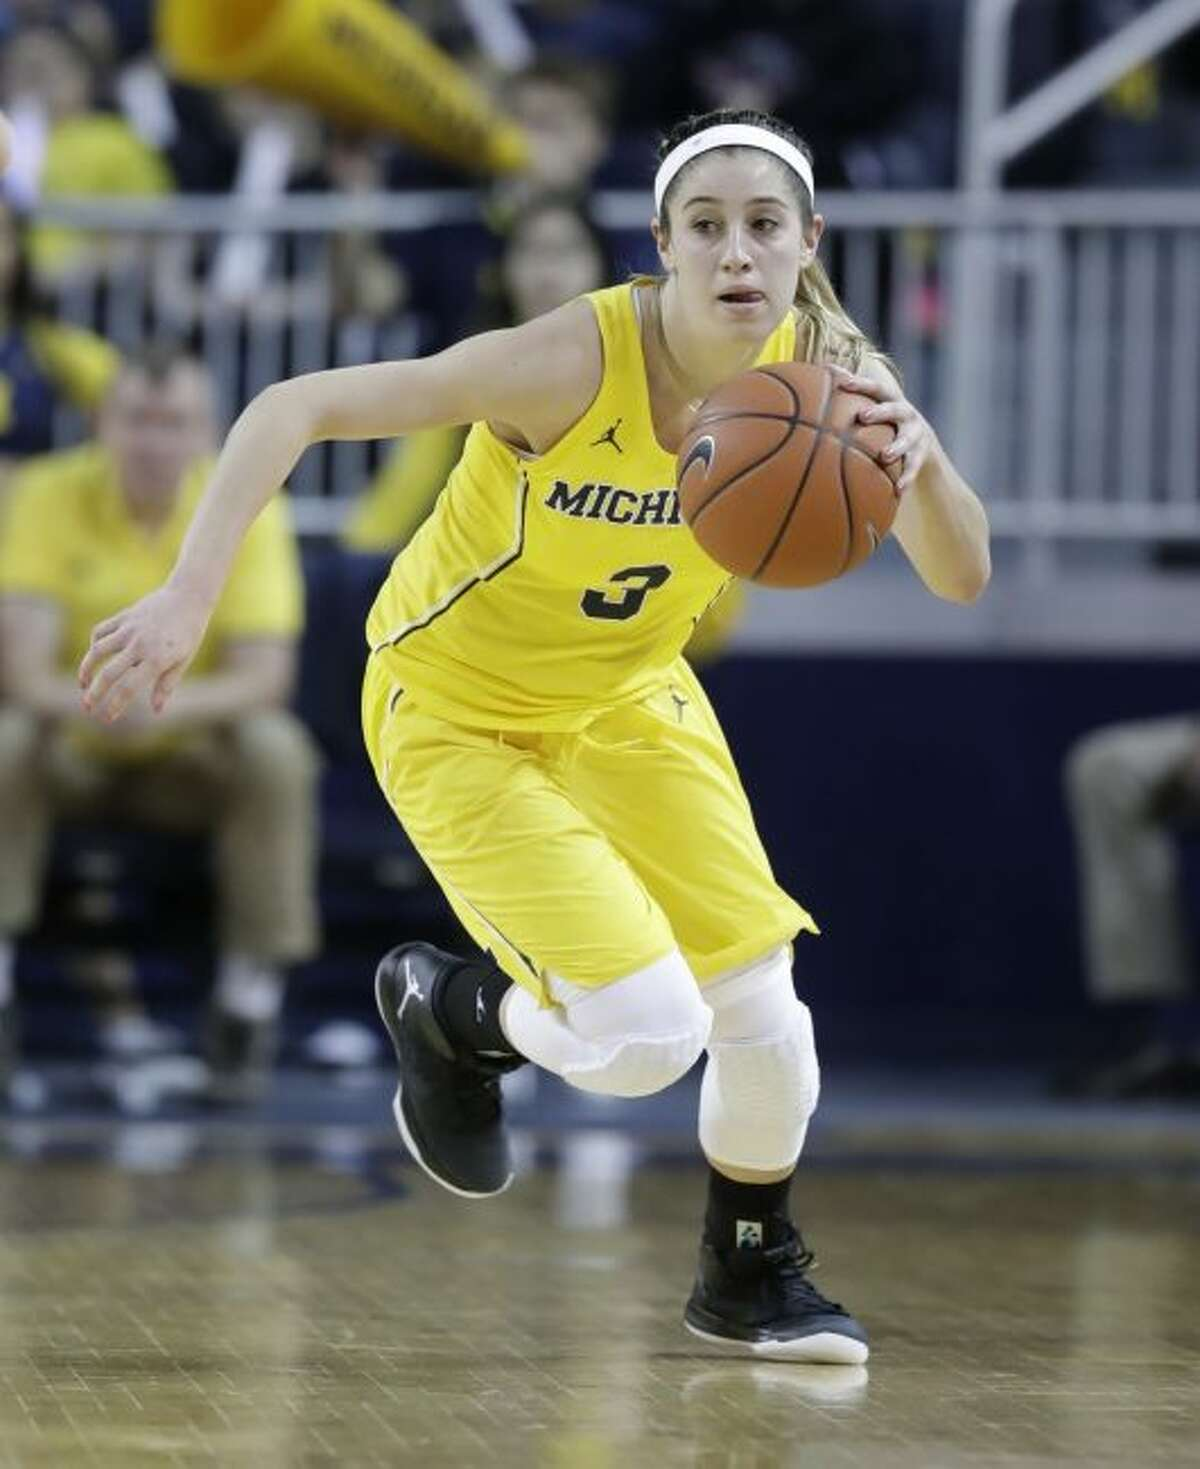 In this Feb. 19, 2017, file photo, Michigan guard Katelynn Flaherty brings the ball up court during the first half of an NCAA college basketball game against Michigan State in Ann Arbor, Mich. No player at Michigan, male or female, has scored more points than Flaherty. The 5-foot-7 senior has helped the Wolverines become competitive with some of the top teams in the Big Ten. (AP Photo/Carlos Osorio, File)